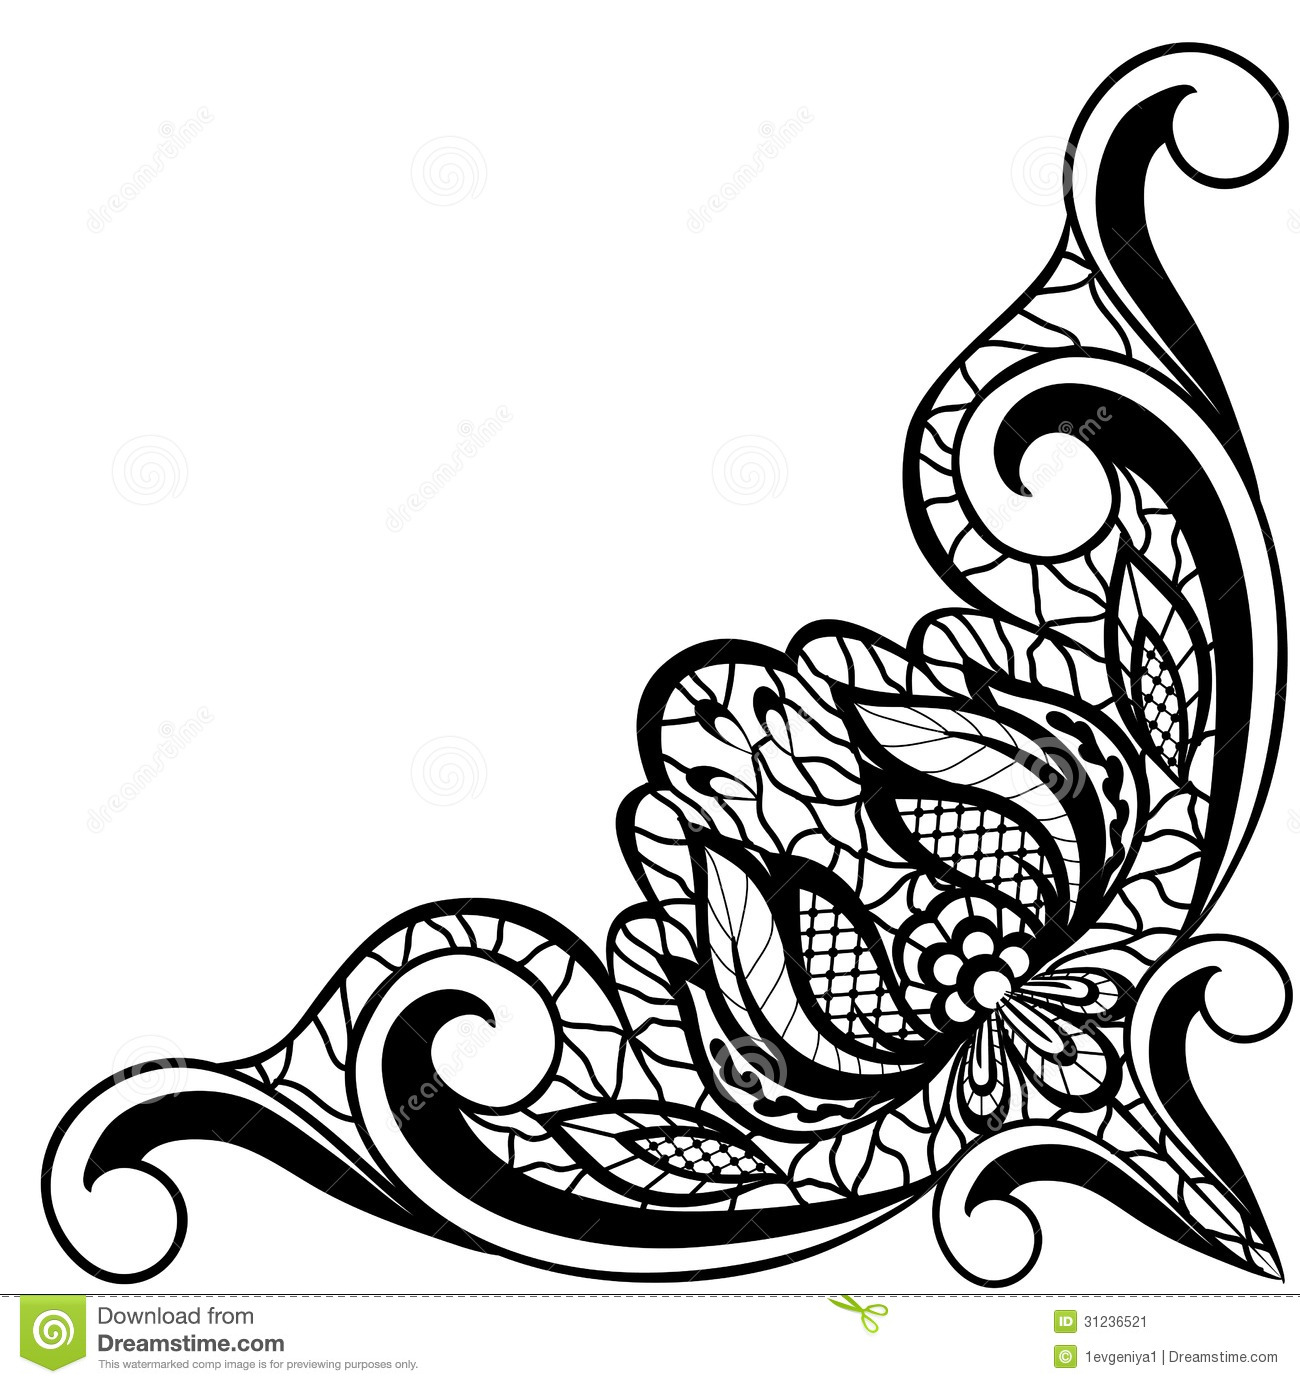 Black And White Floral In Form Of Border Angle Illustration 31236521